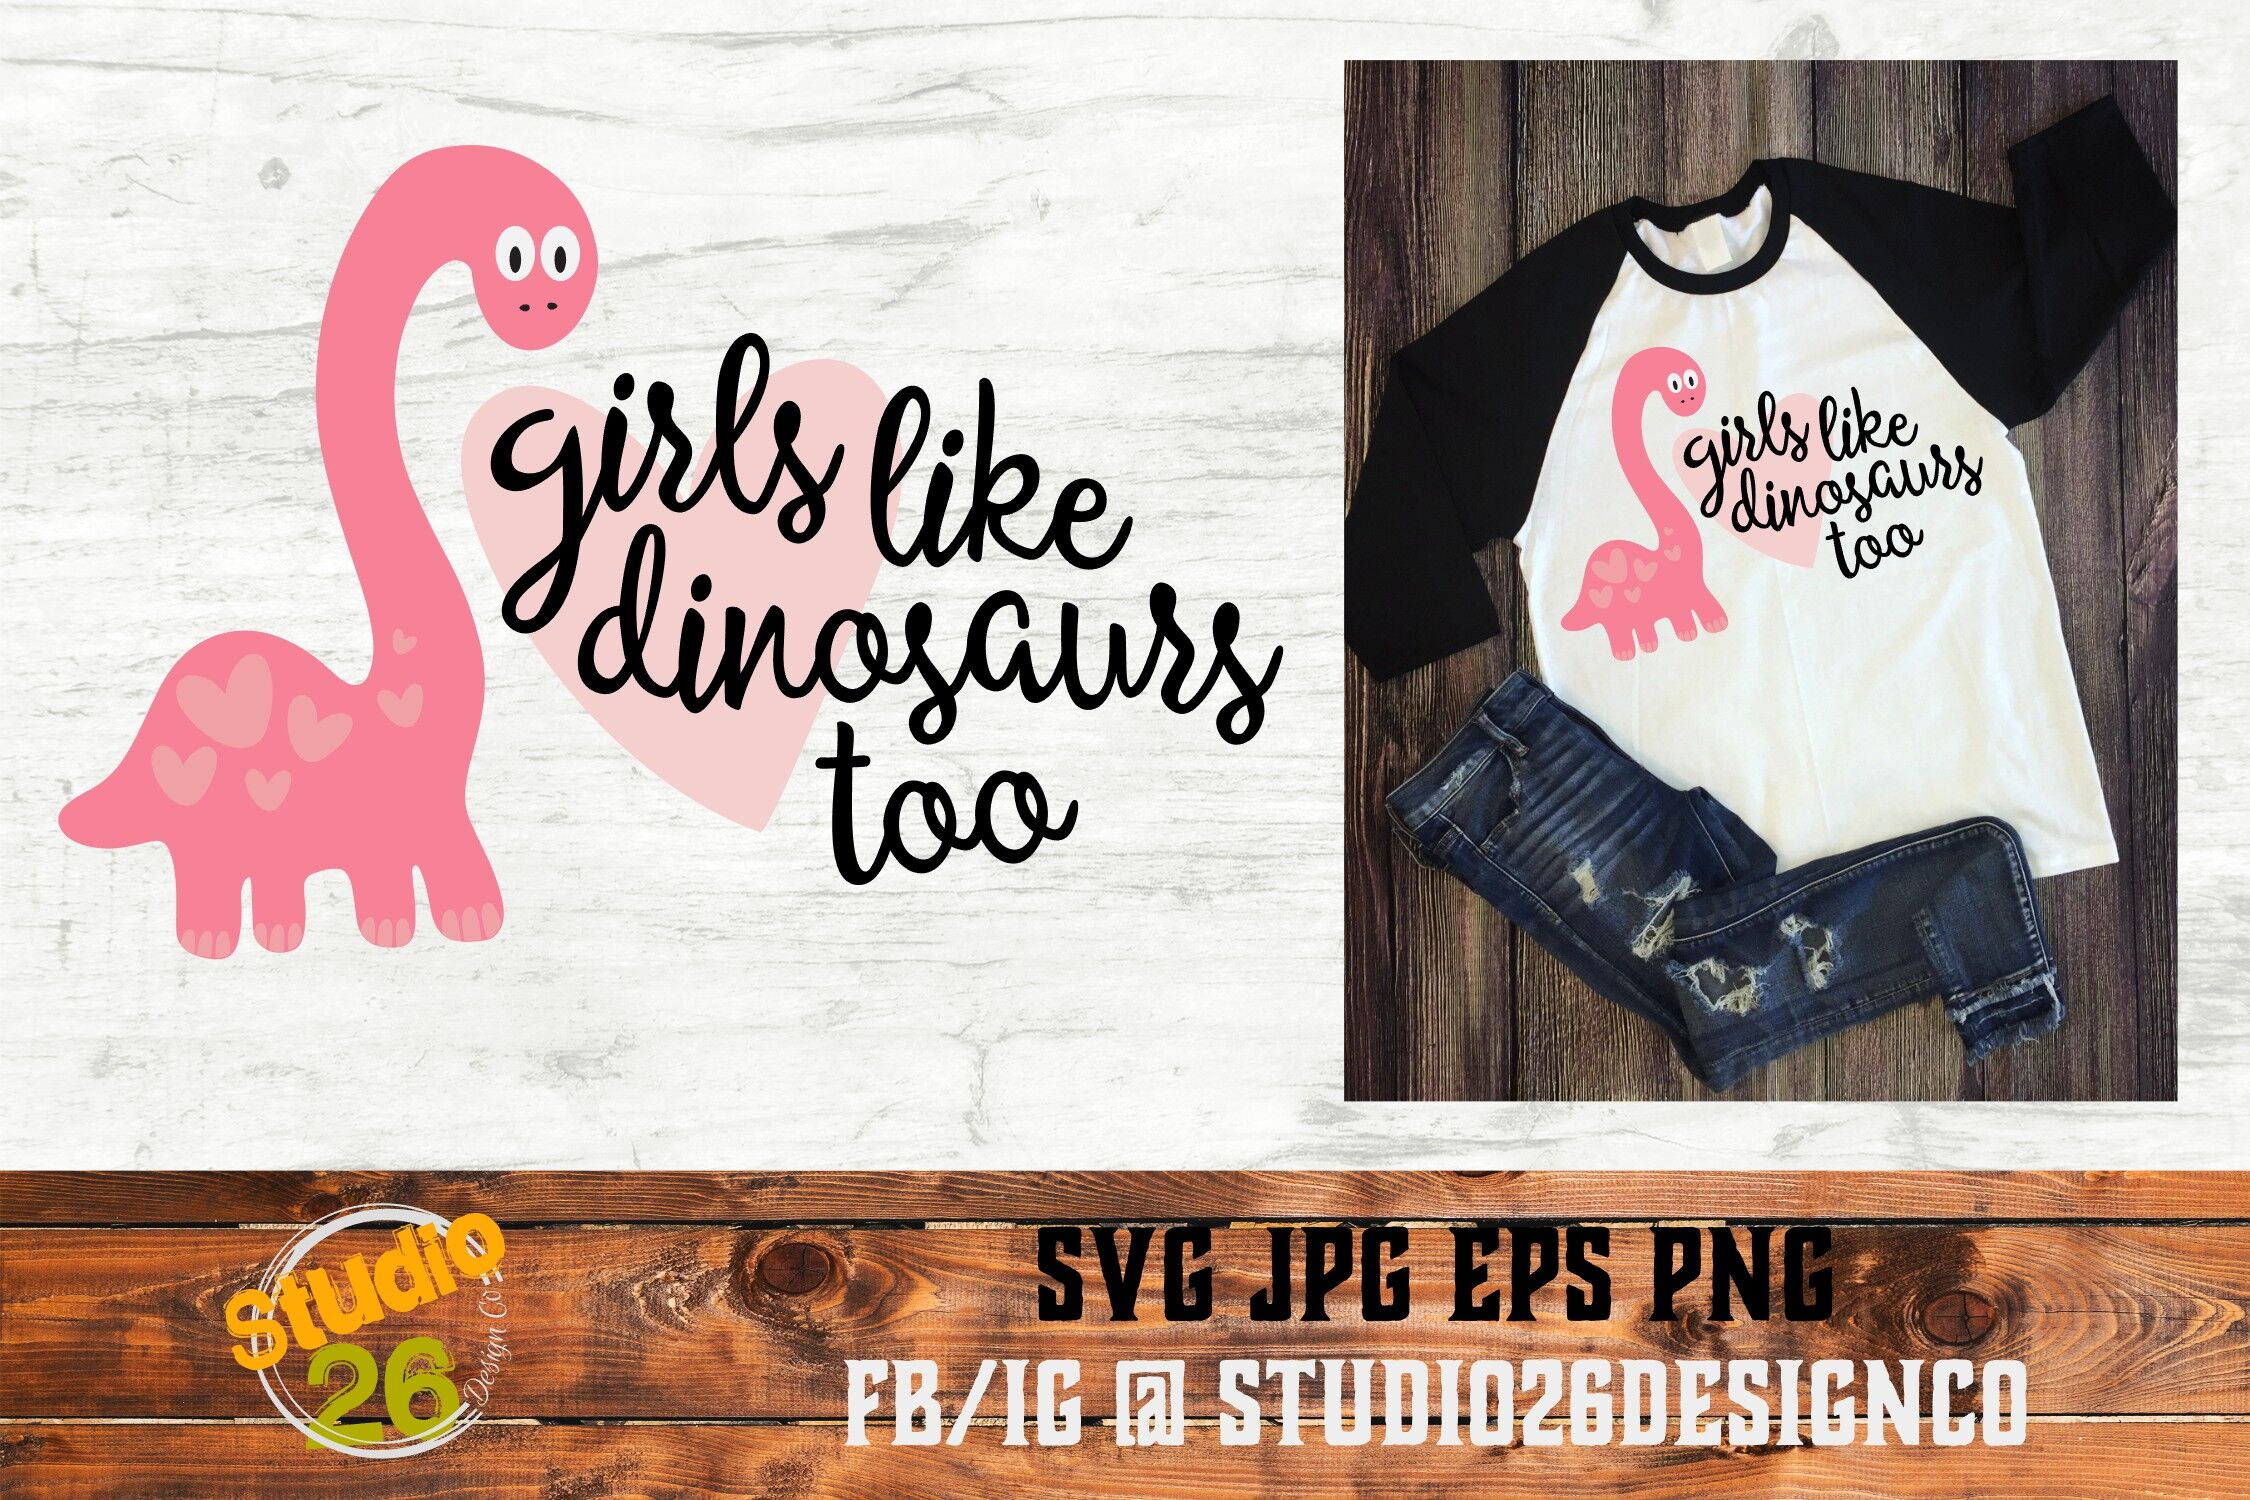 Girls Like Dinosaurs Too Svg Png Eps By Studio 26 Design Co